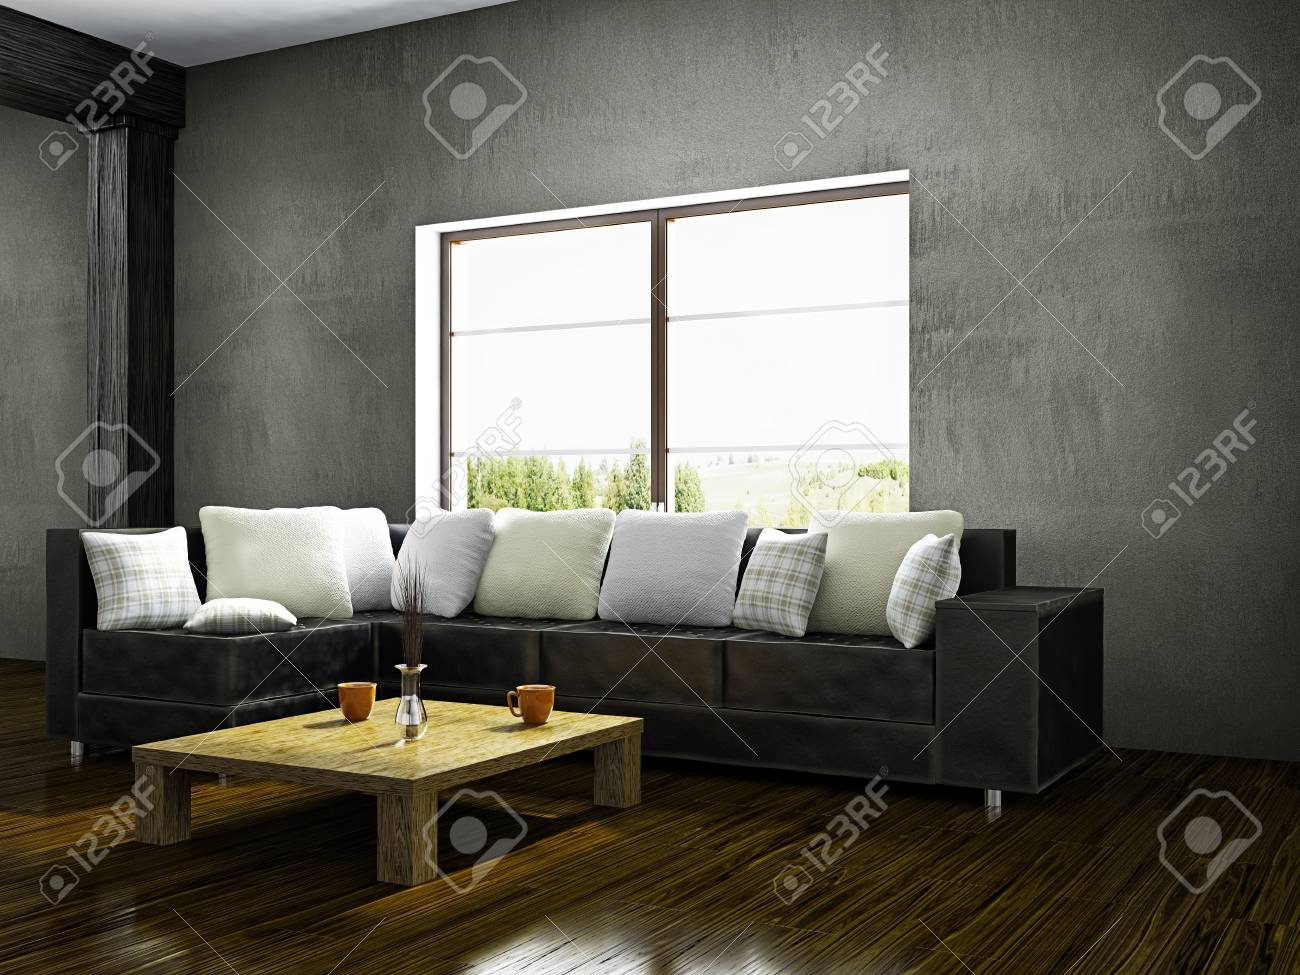 Old Room With Sofa Near The Window Stock Photo Picture And Royalty